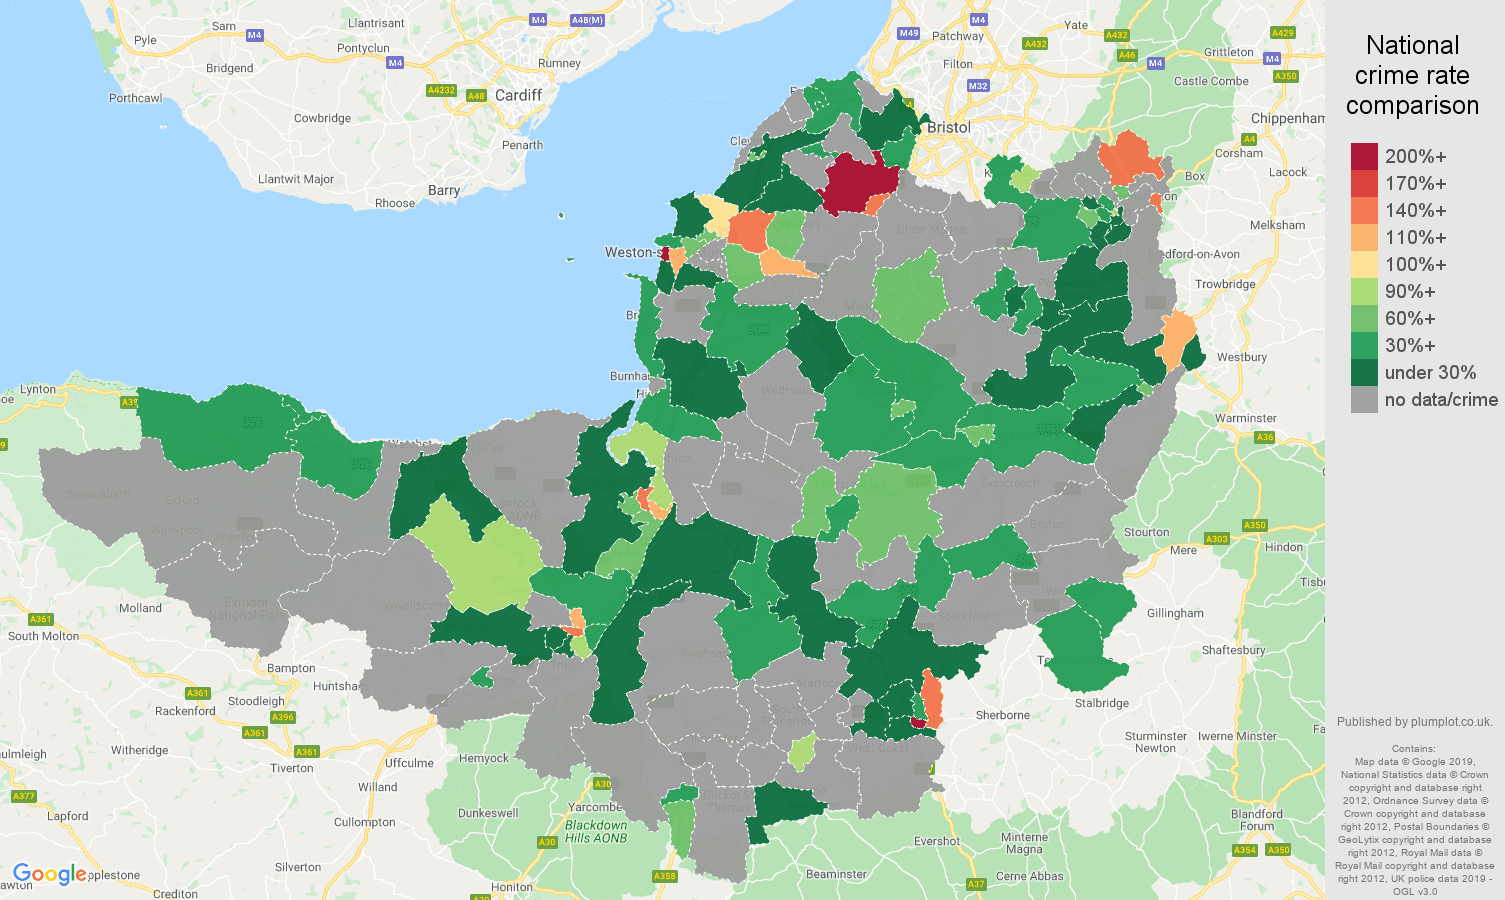 Somerset possession of weapons crime rate comparison map